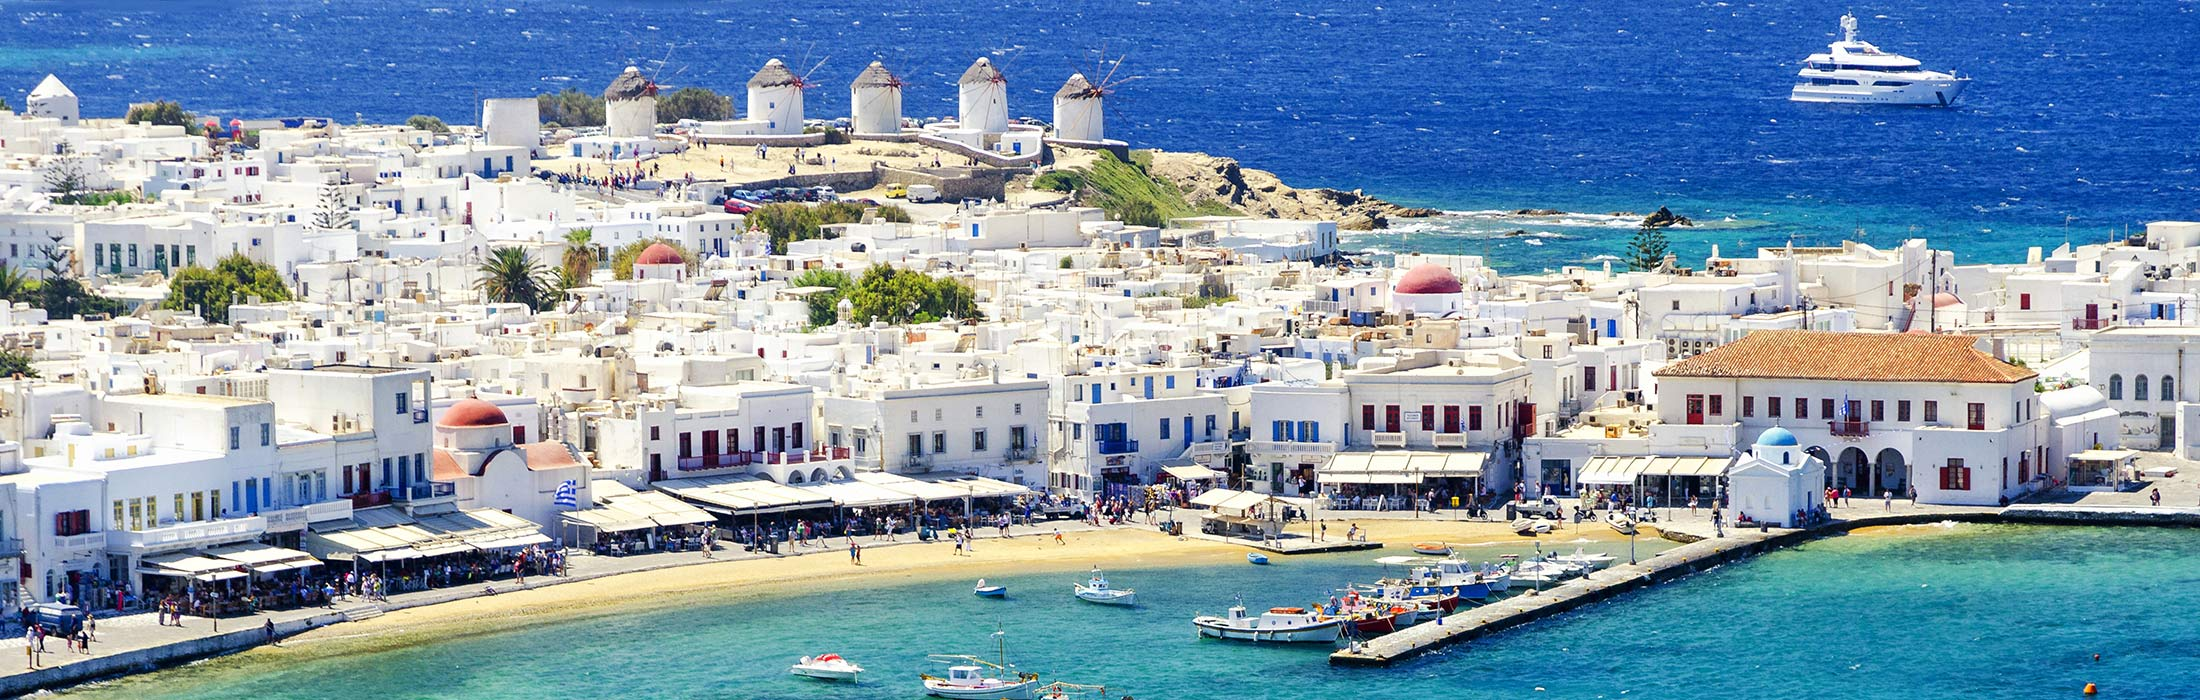 top-yacht-charter-destinations-mediterranean-greece-cyclades-mykonos-main-slider-1